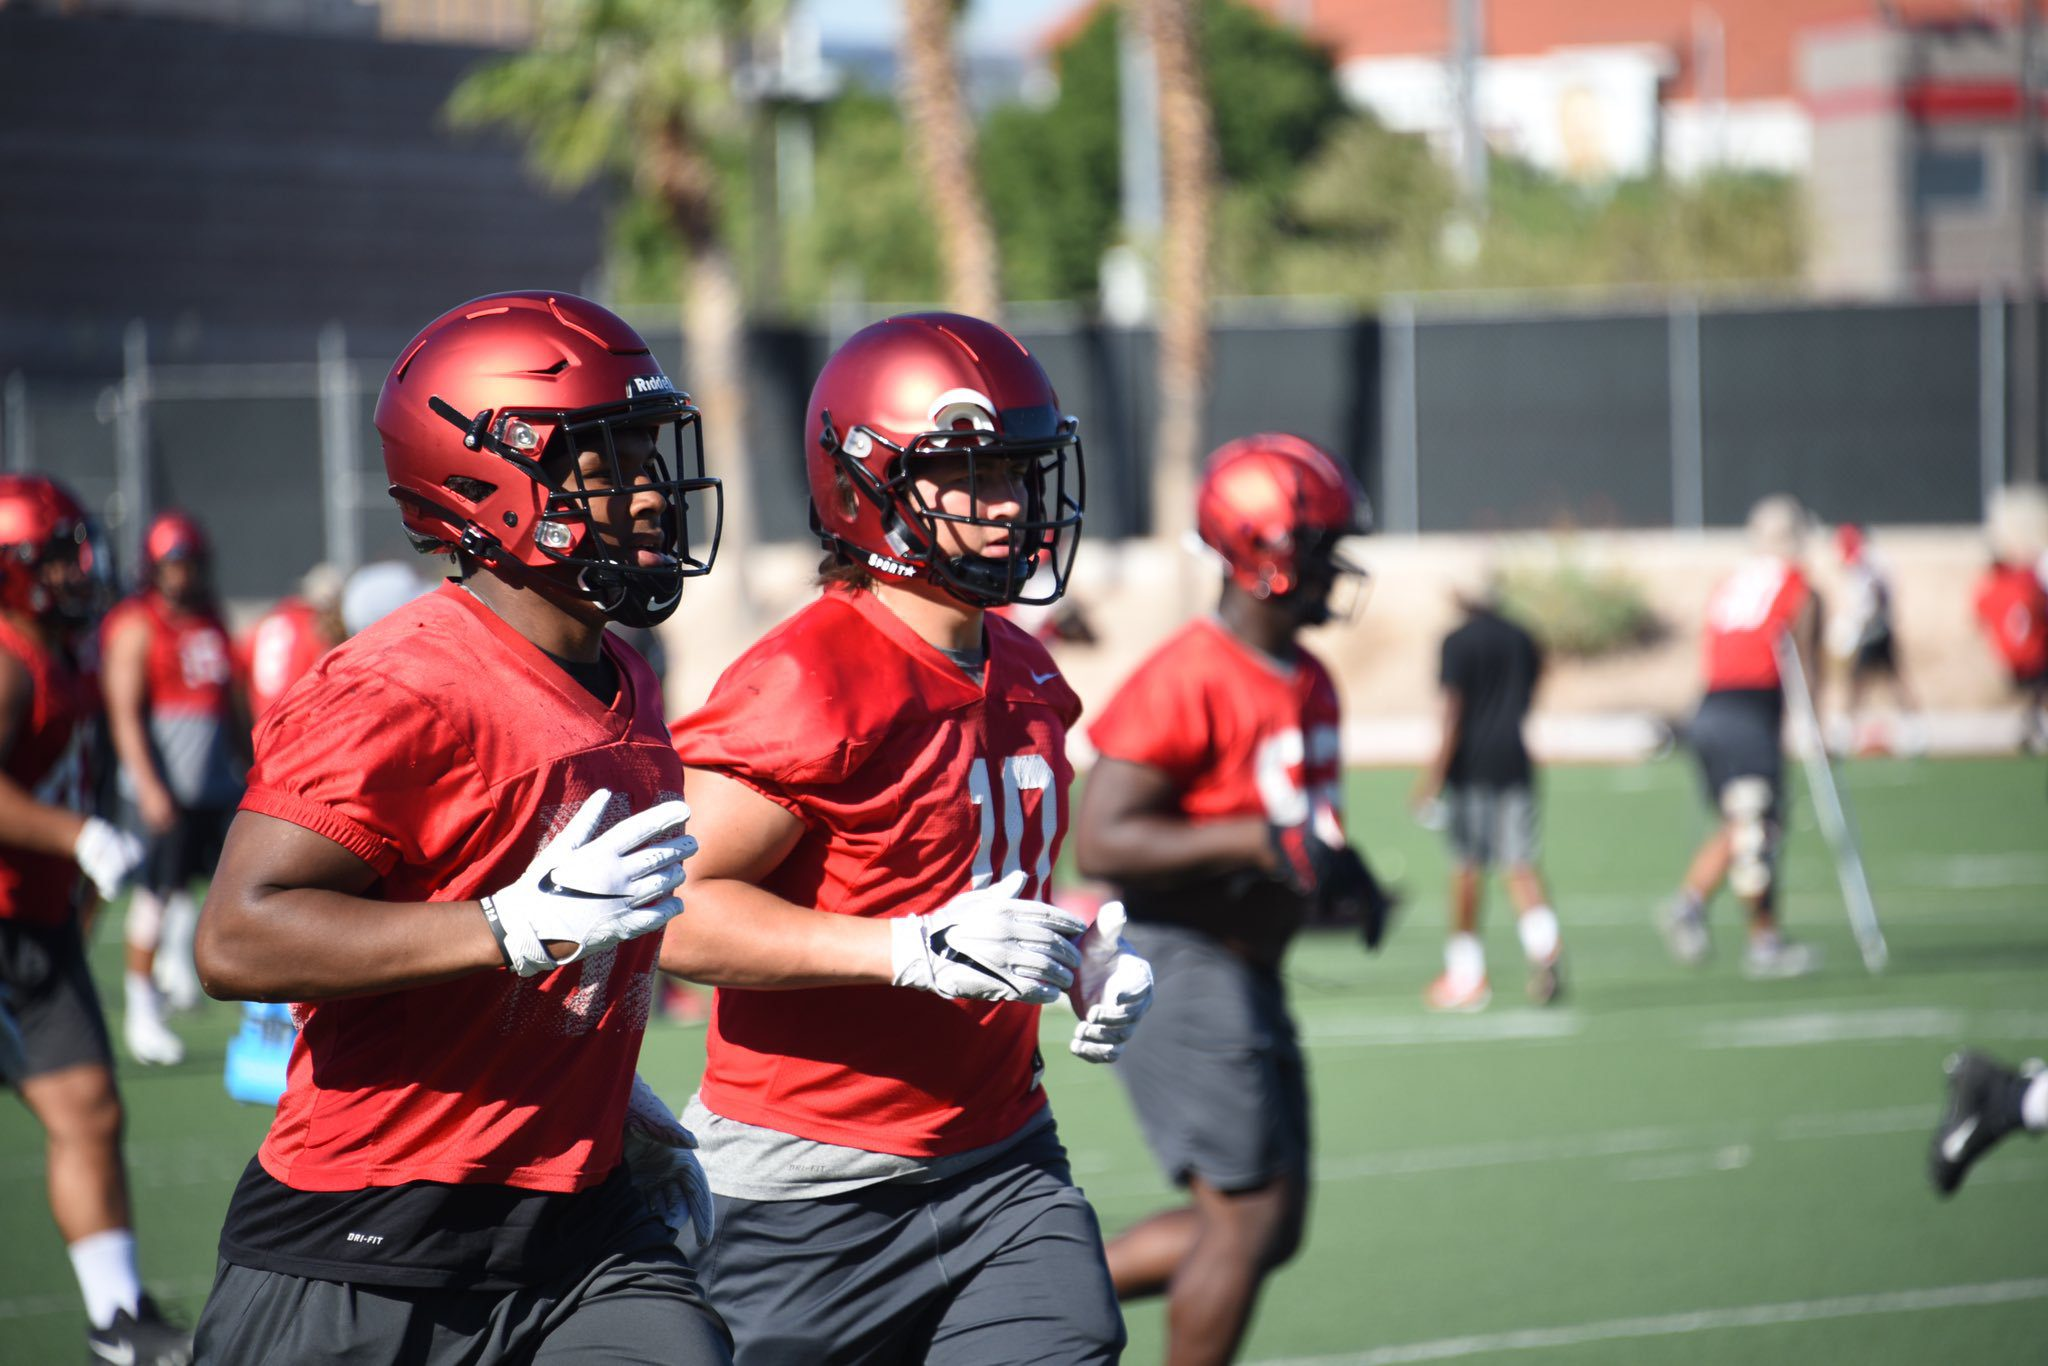 UNLV Expects Big Things From LB Duo of Hester and Viramontes